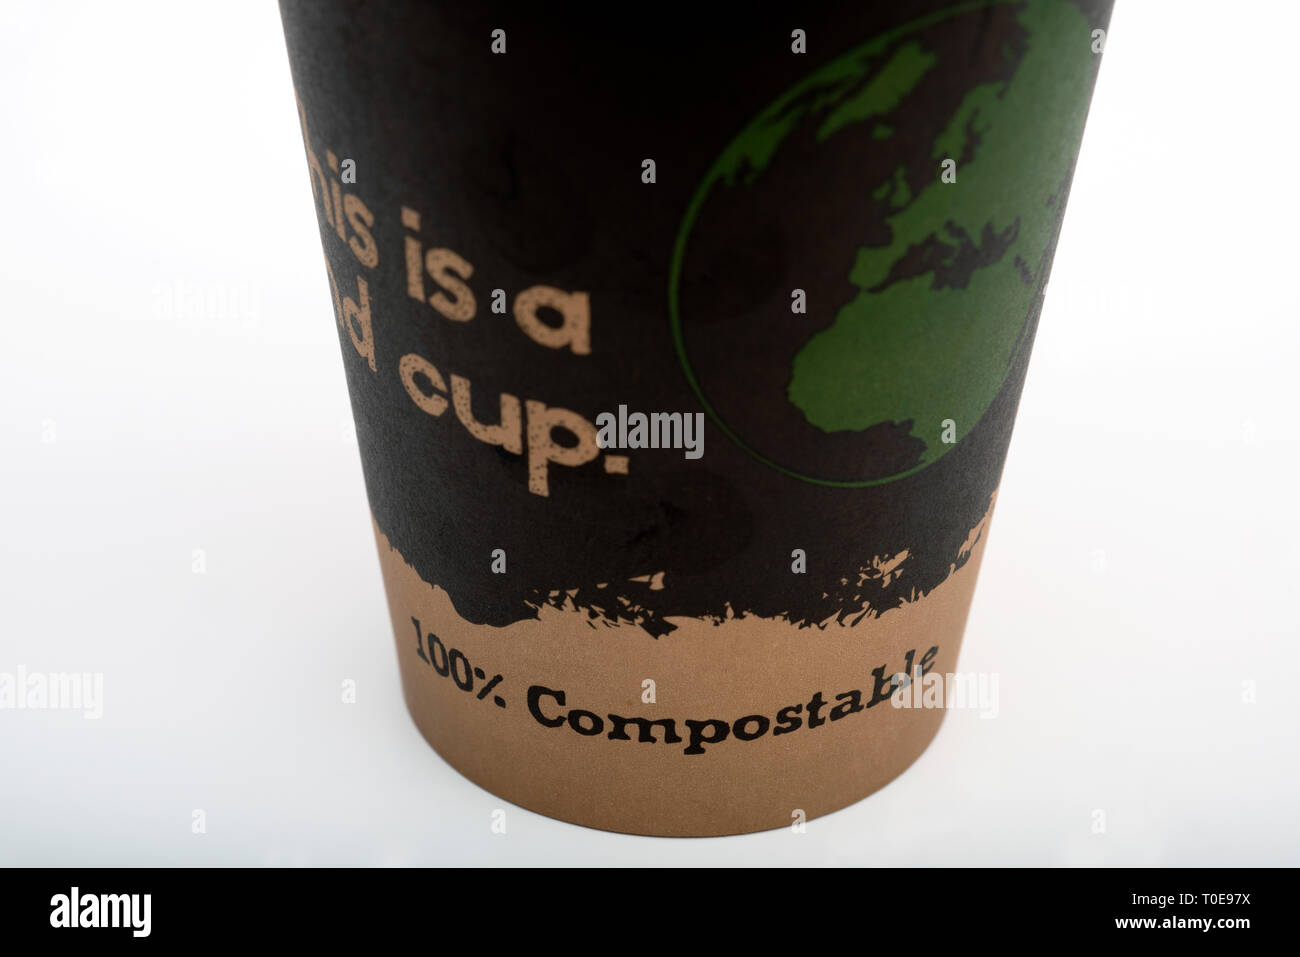 100% compostable coffee cup - Stock Image